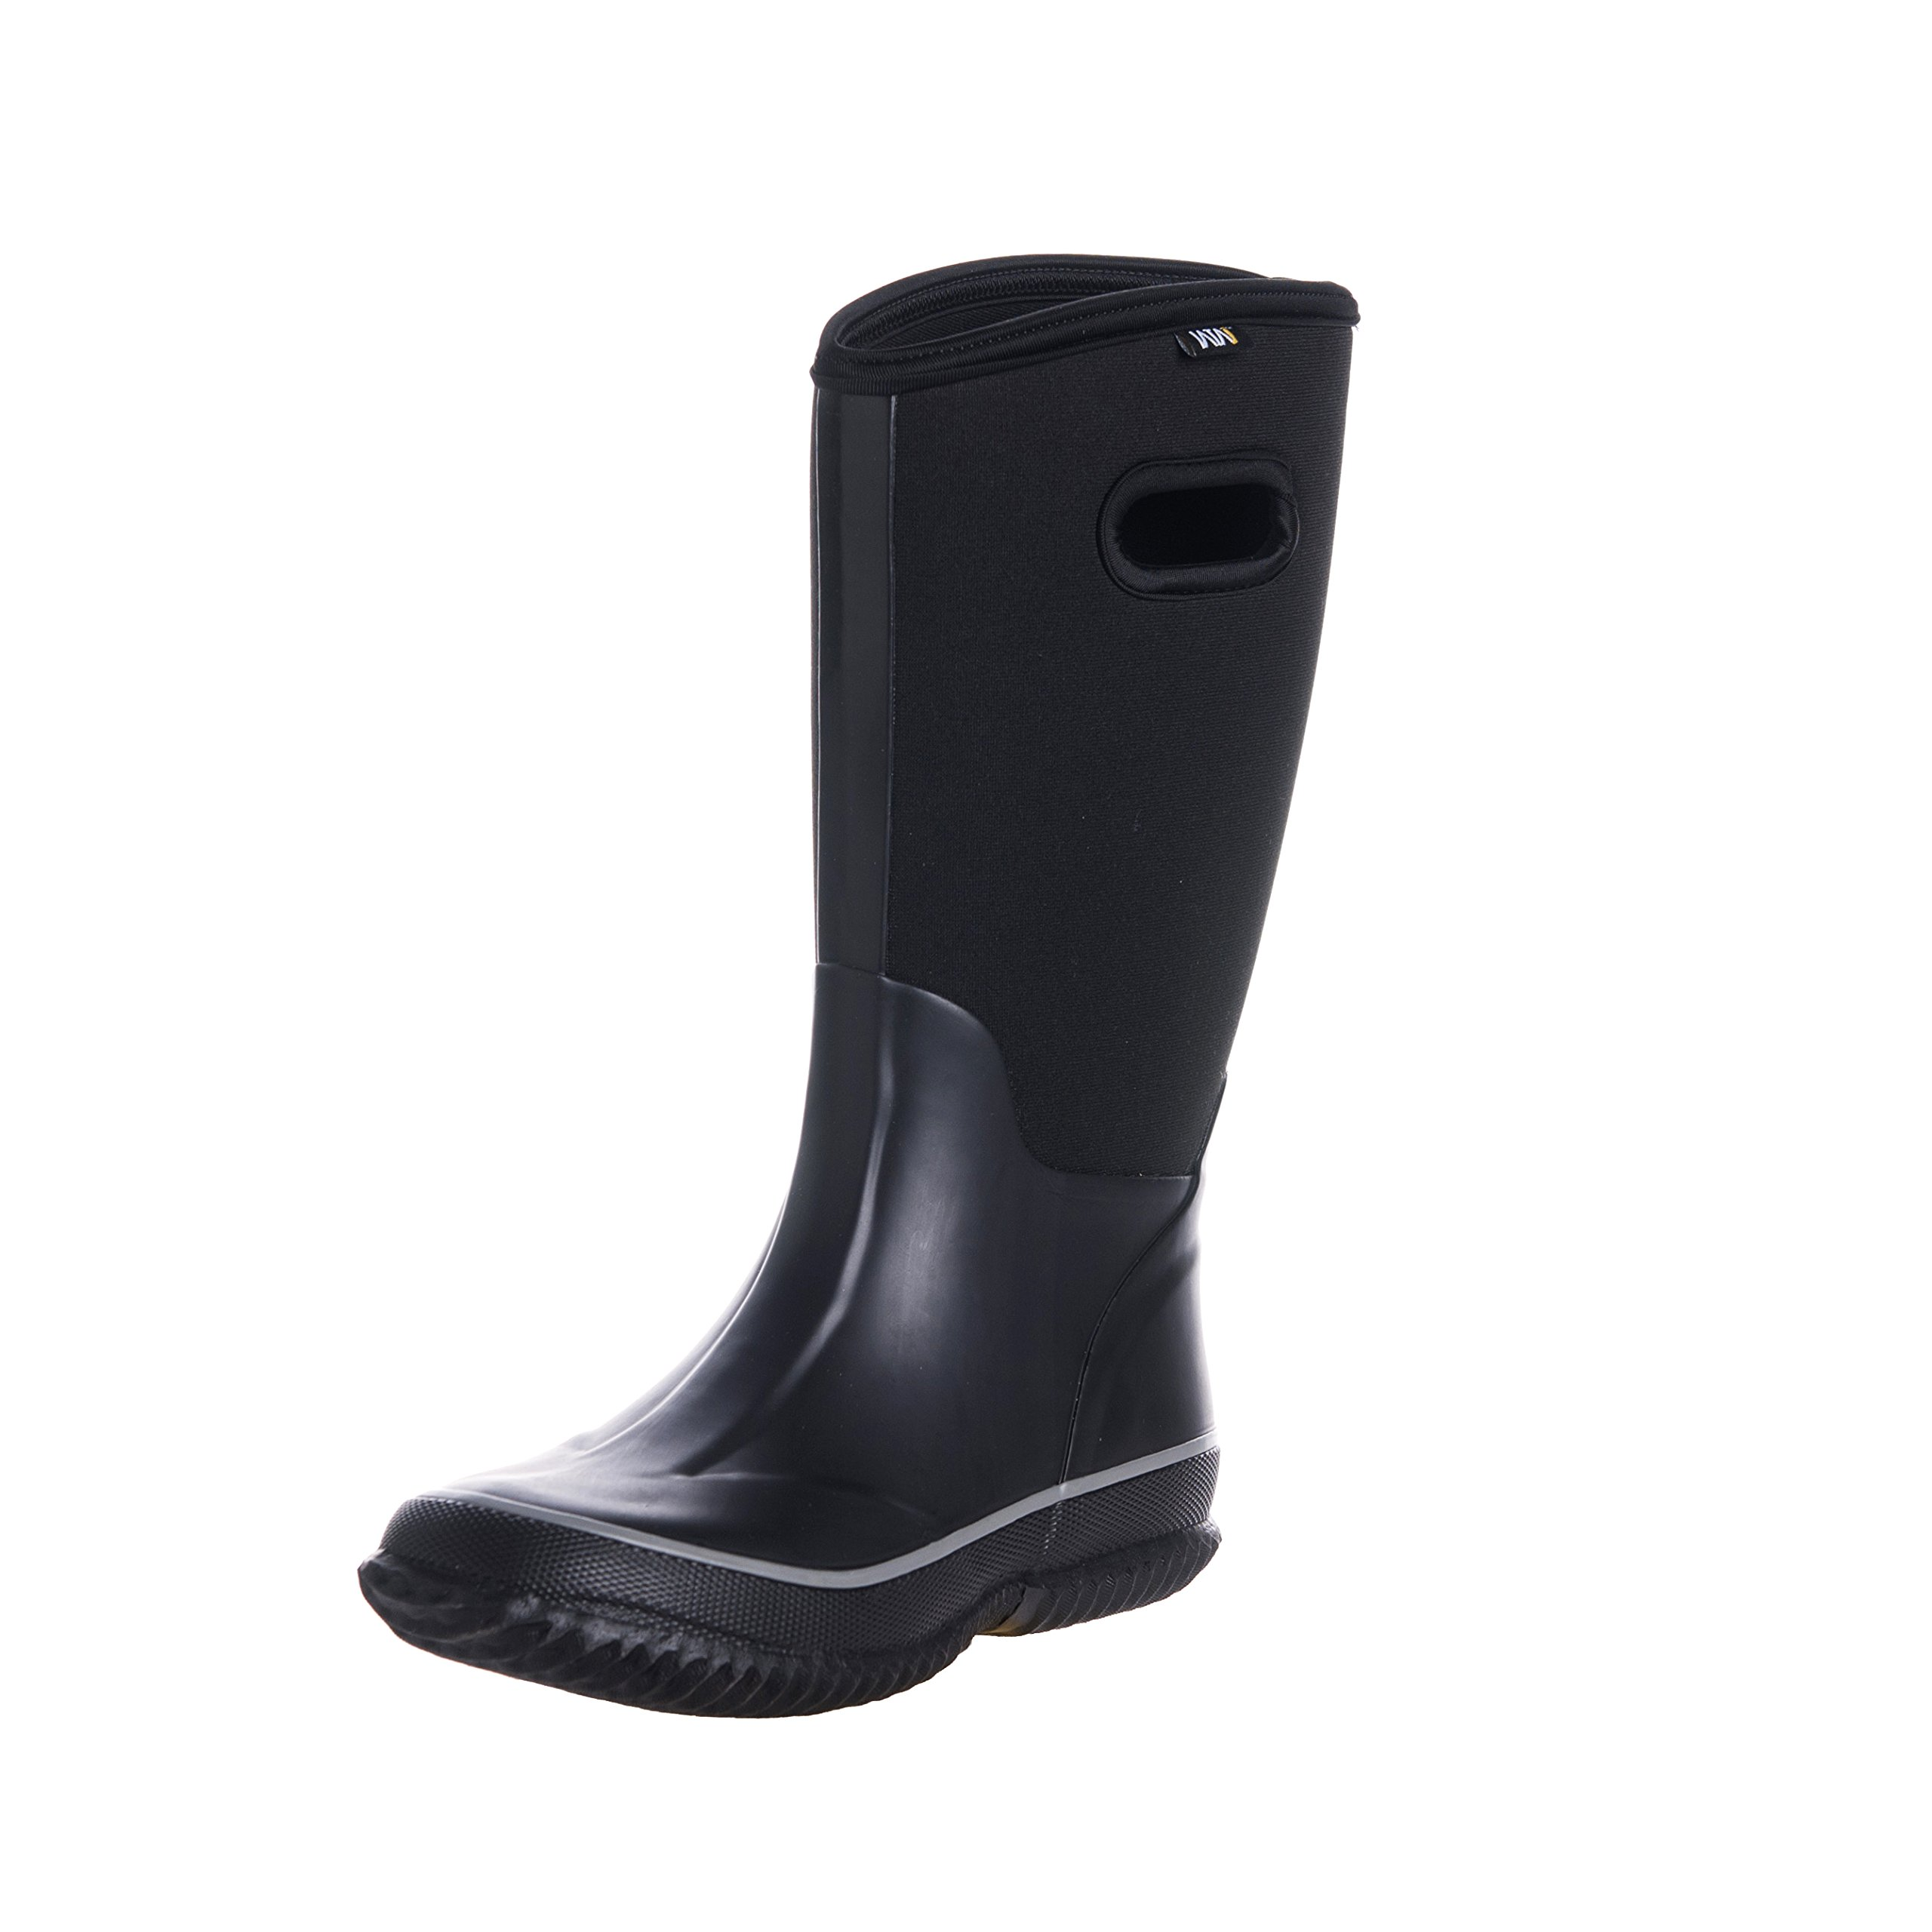 WTW Men's Neoprene Rubber Rain Snow Boots by Fuyang